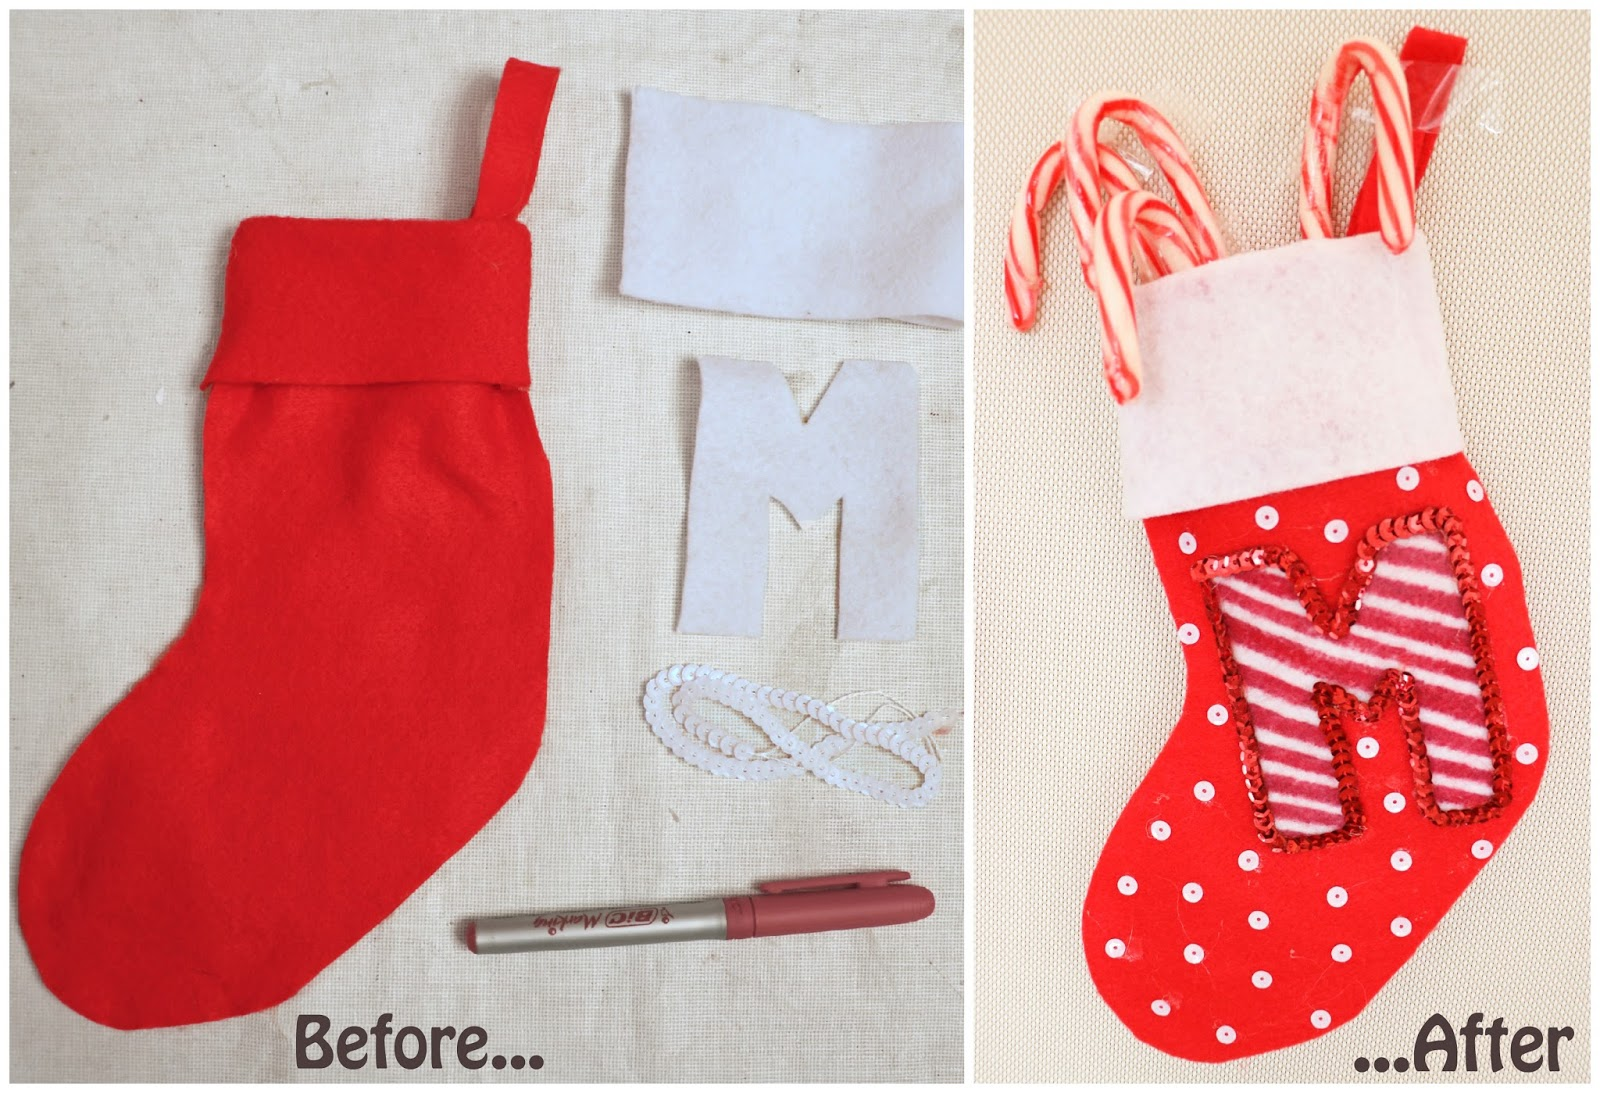 Decorate your stocking this year with a personalized monogram! Click through for full tutorial